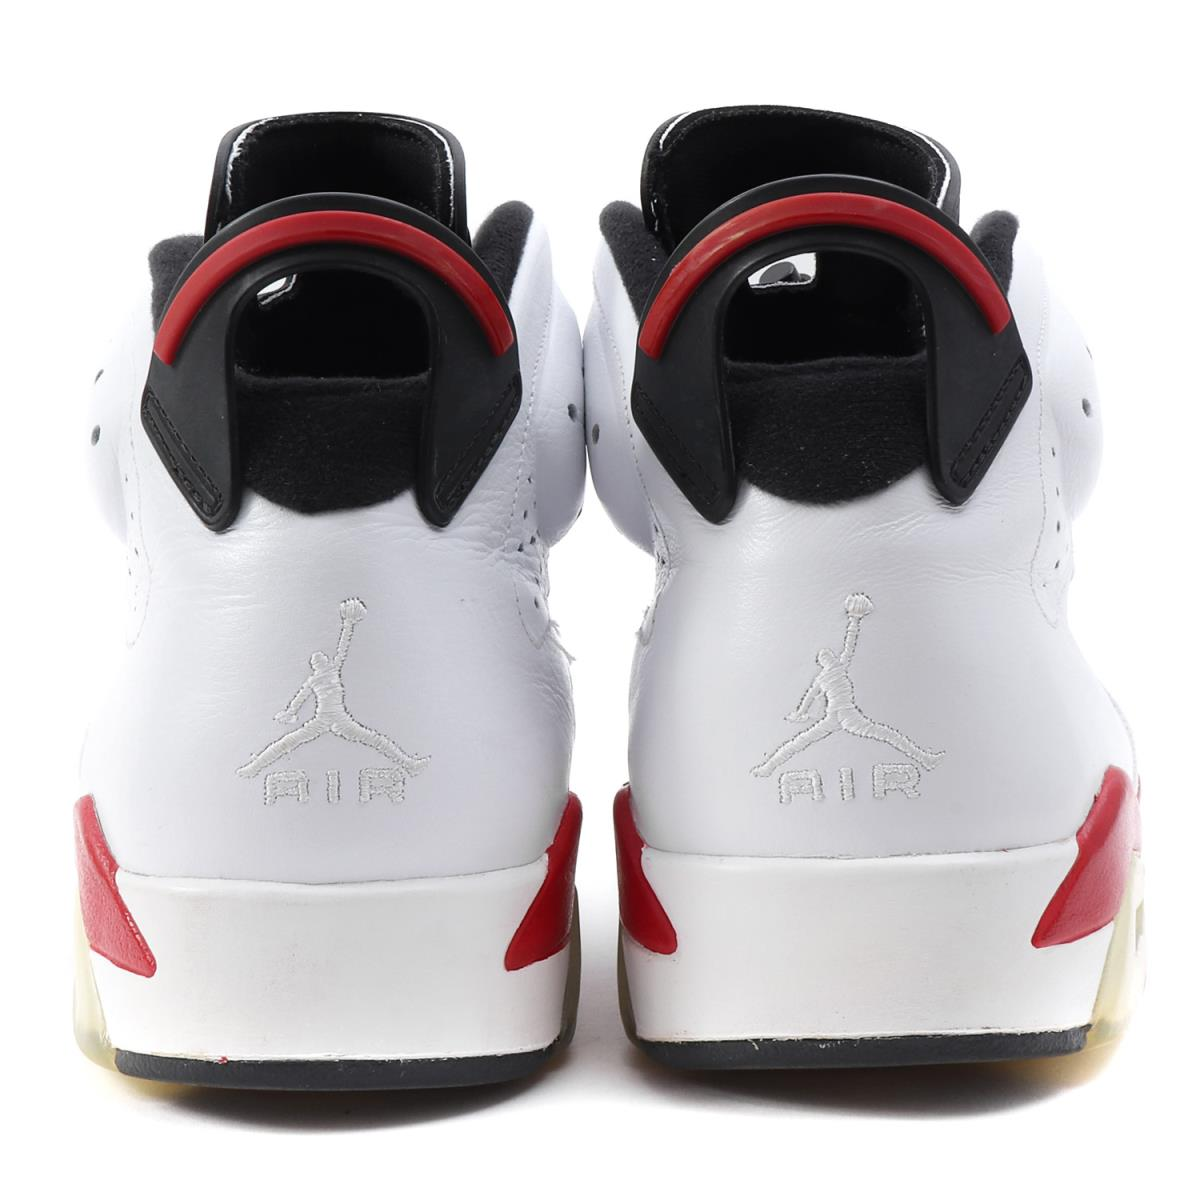 best website 1eda1 996e7 NIKE (Nike) AIR JORDAN 6 RETRO BULLS (384,664-102) white X bar city red  US10.5(28.5cm)